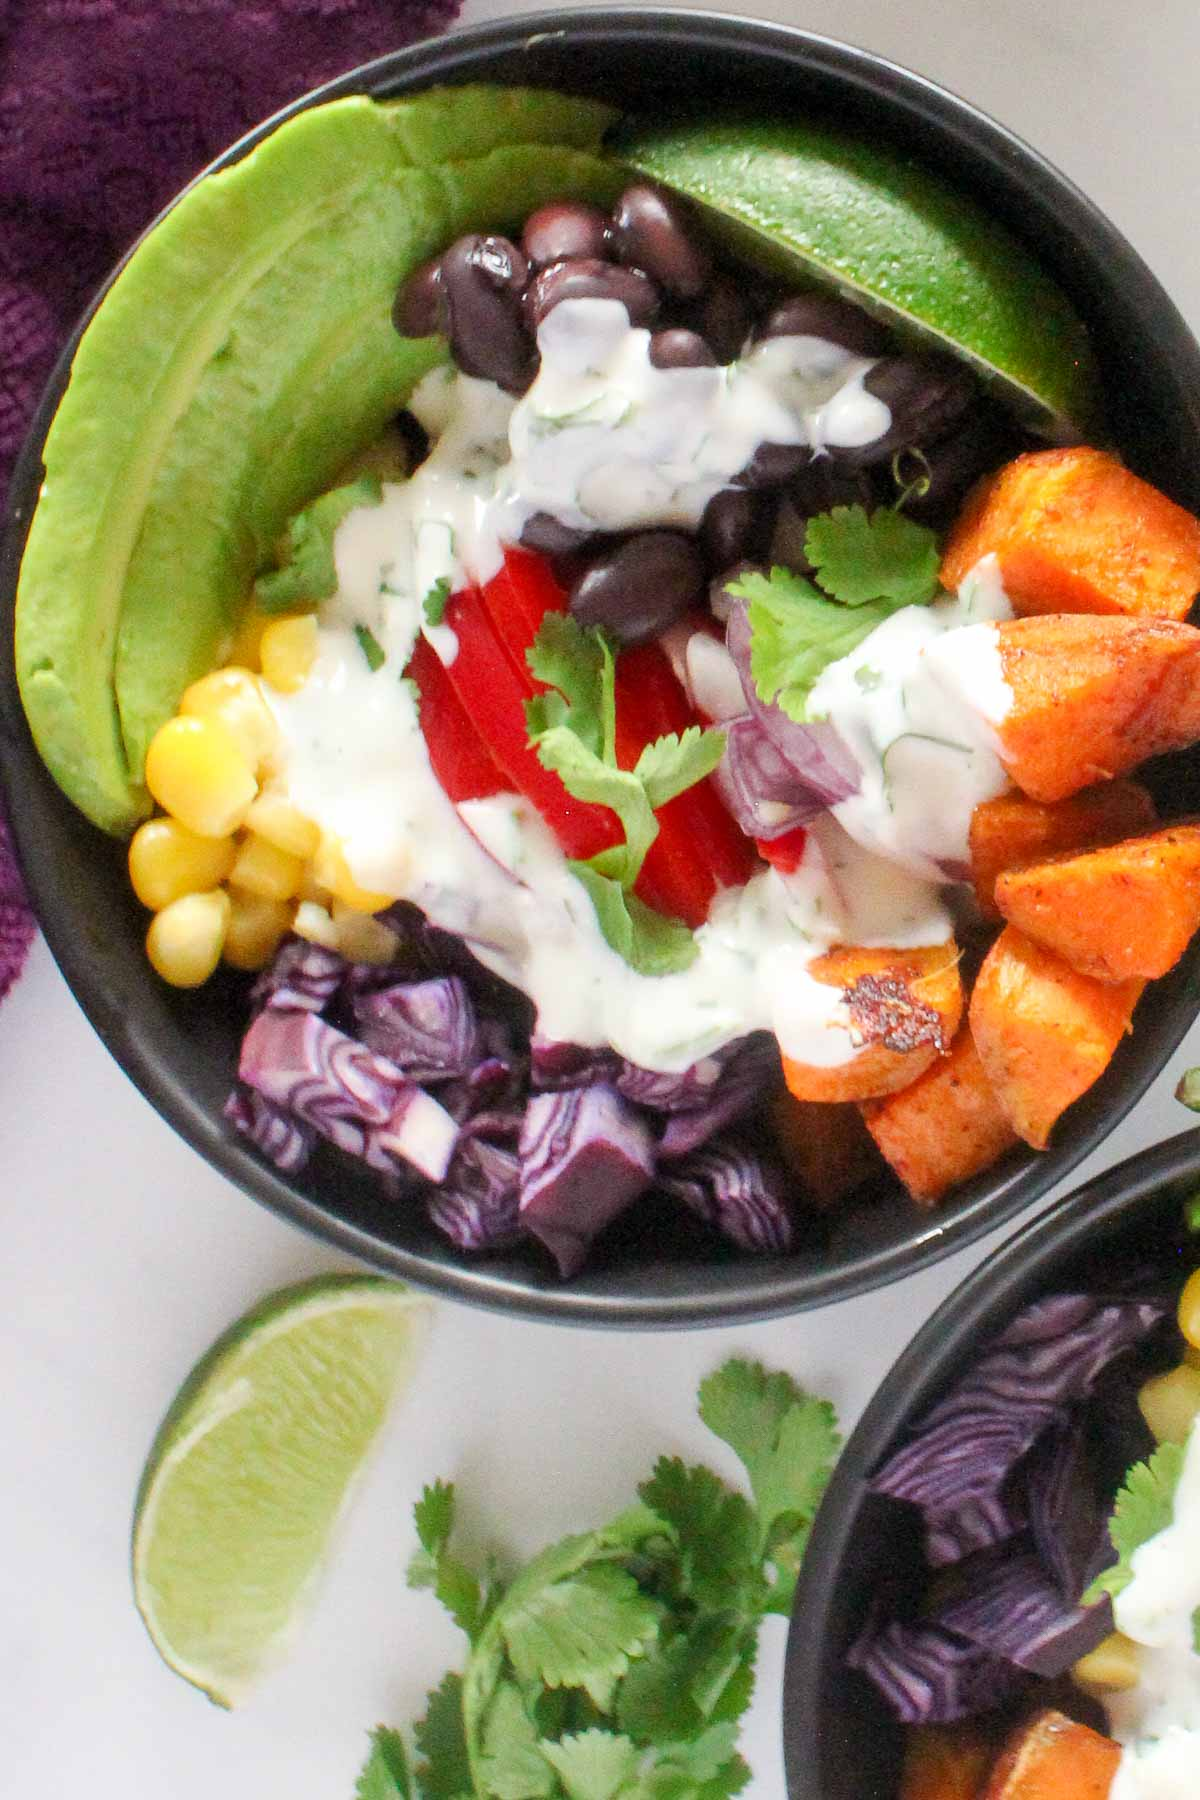 Close up view of black bowl filled with roasted sweet potato cubes, corn kernels, black beans, red cabbage, fresh cilantro and white sauce